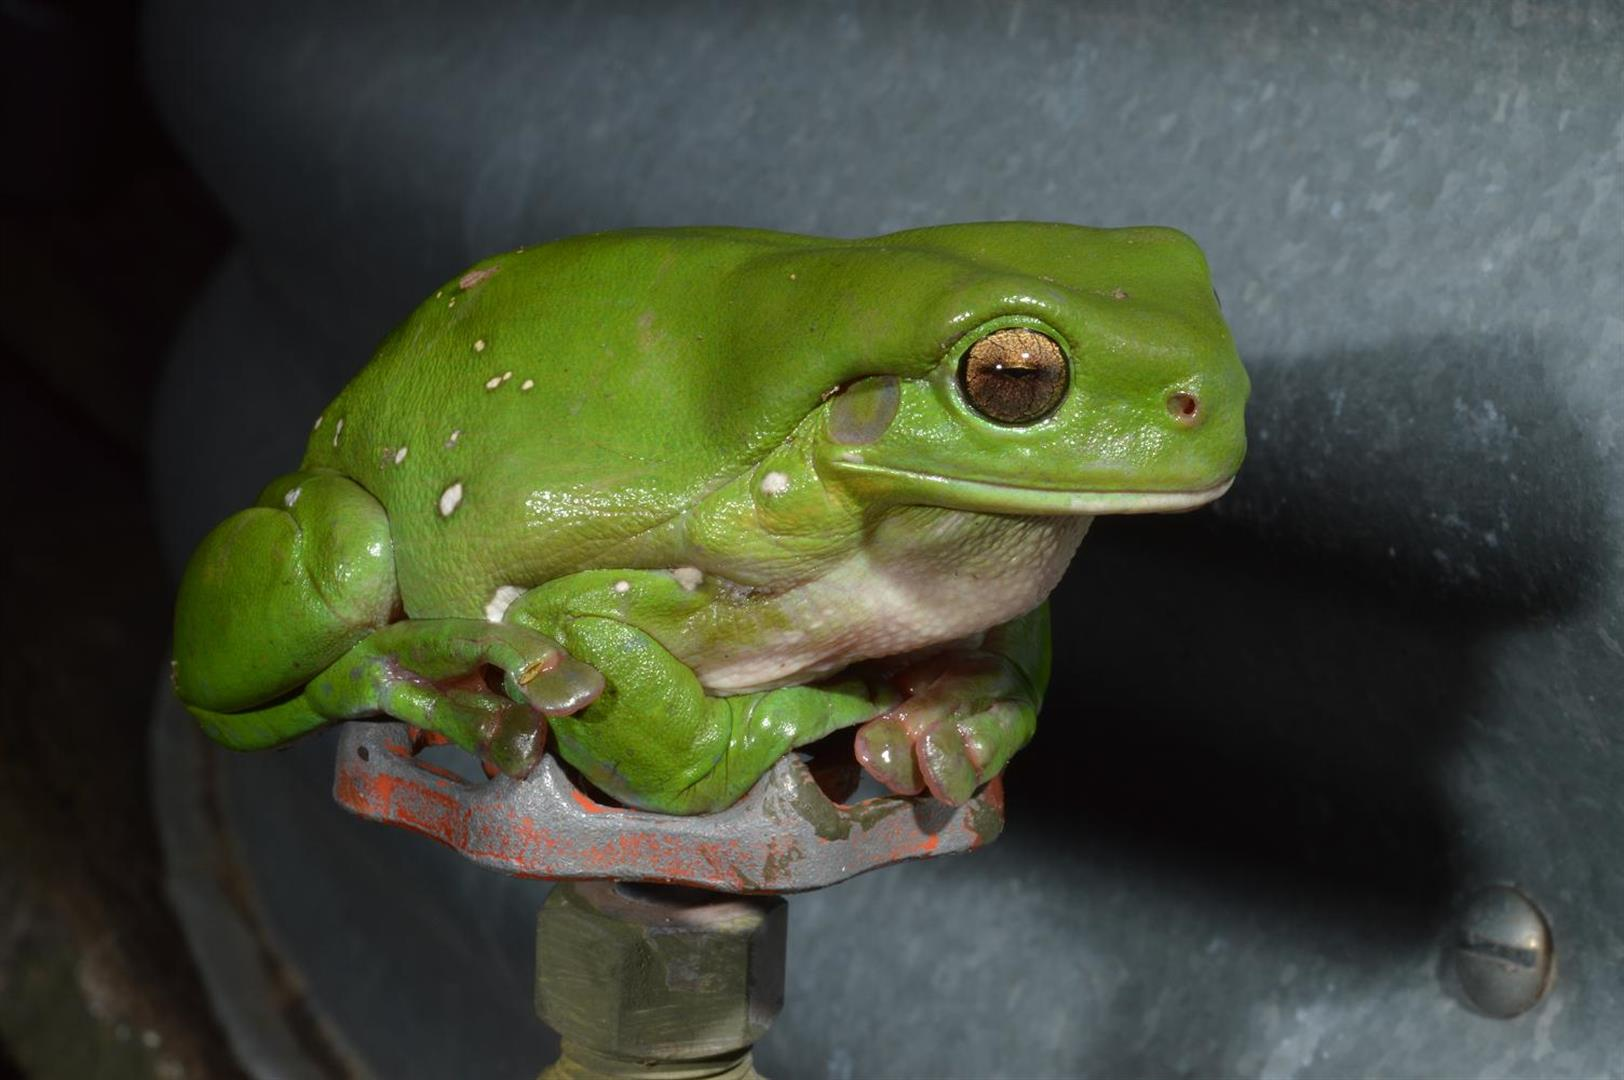 Green Tree Frog (Litoria caerulea), Lake Broadwater, Queensland. Photograph courtesy and copyright Mike Swan.